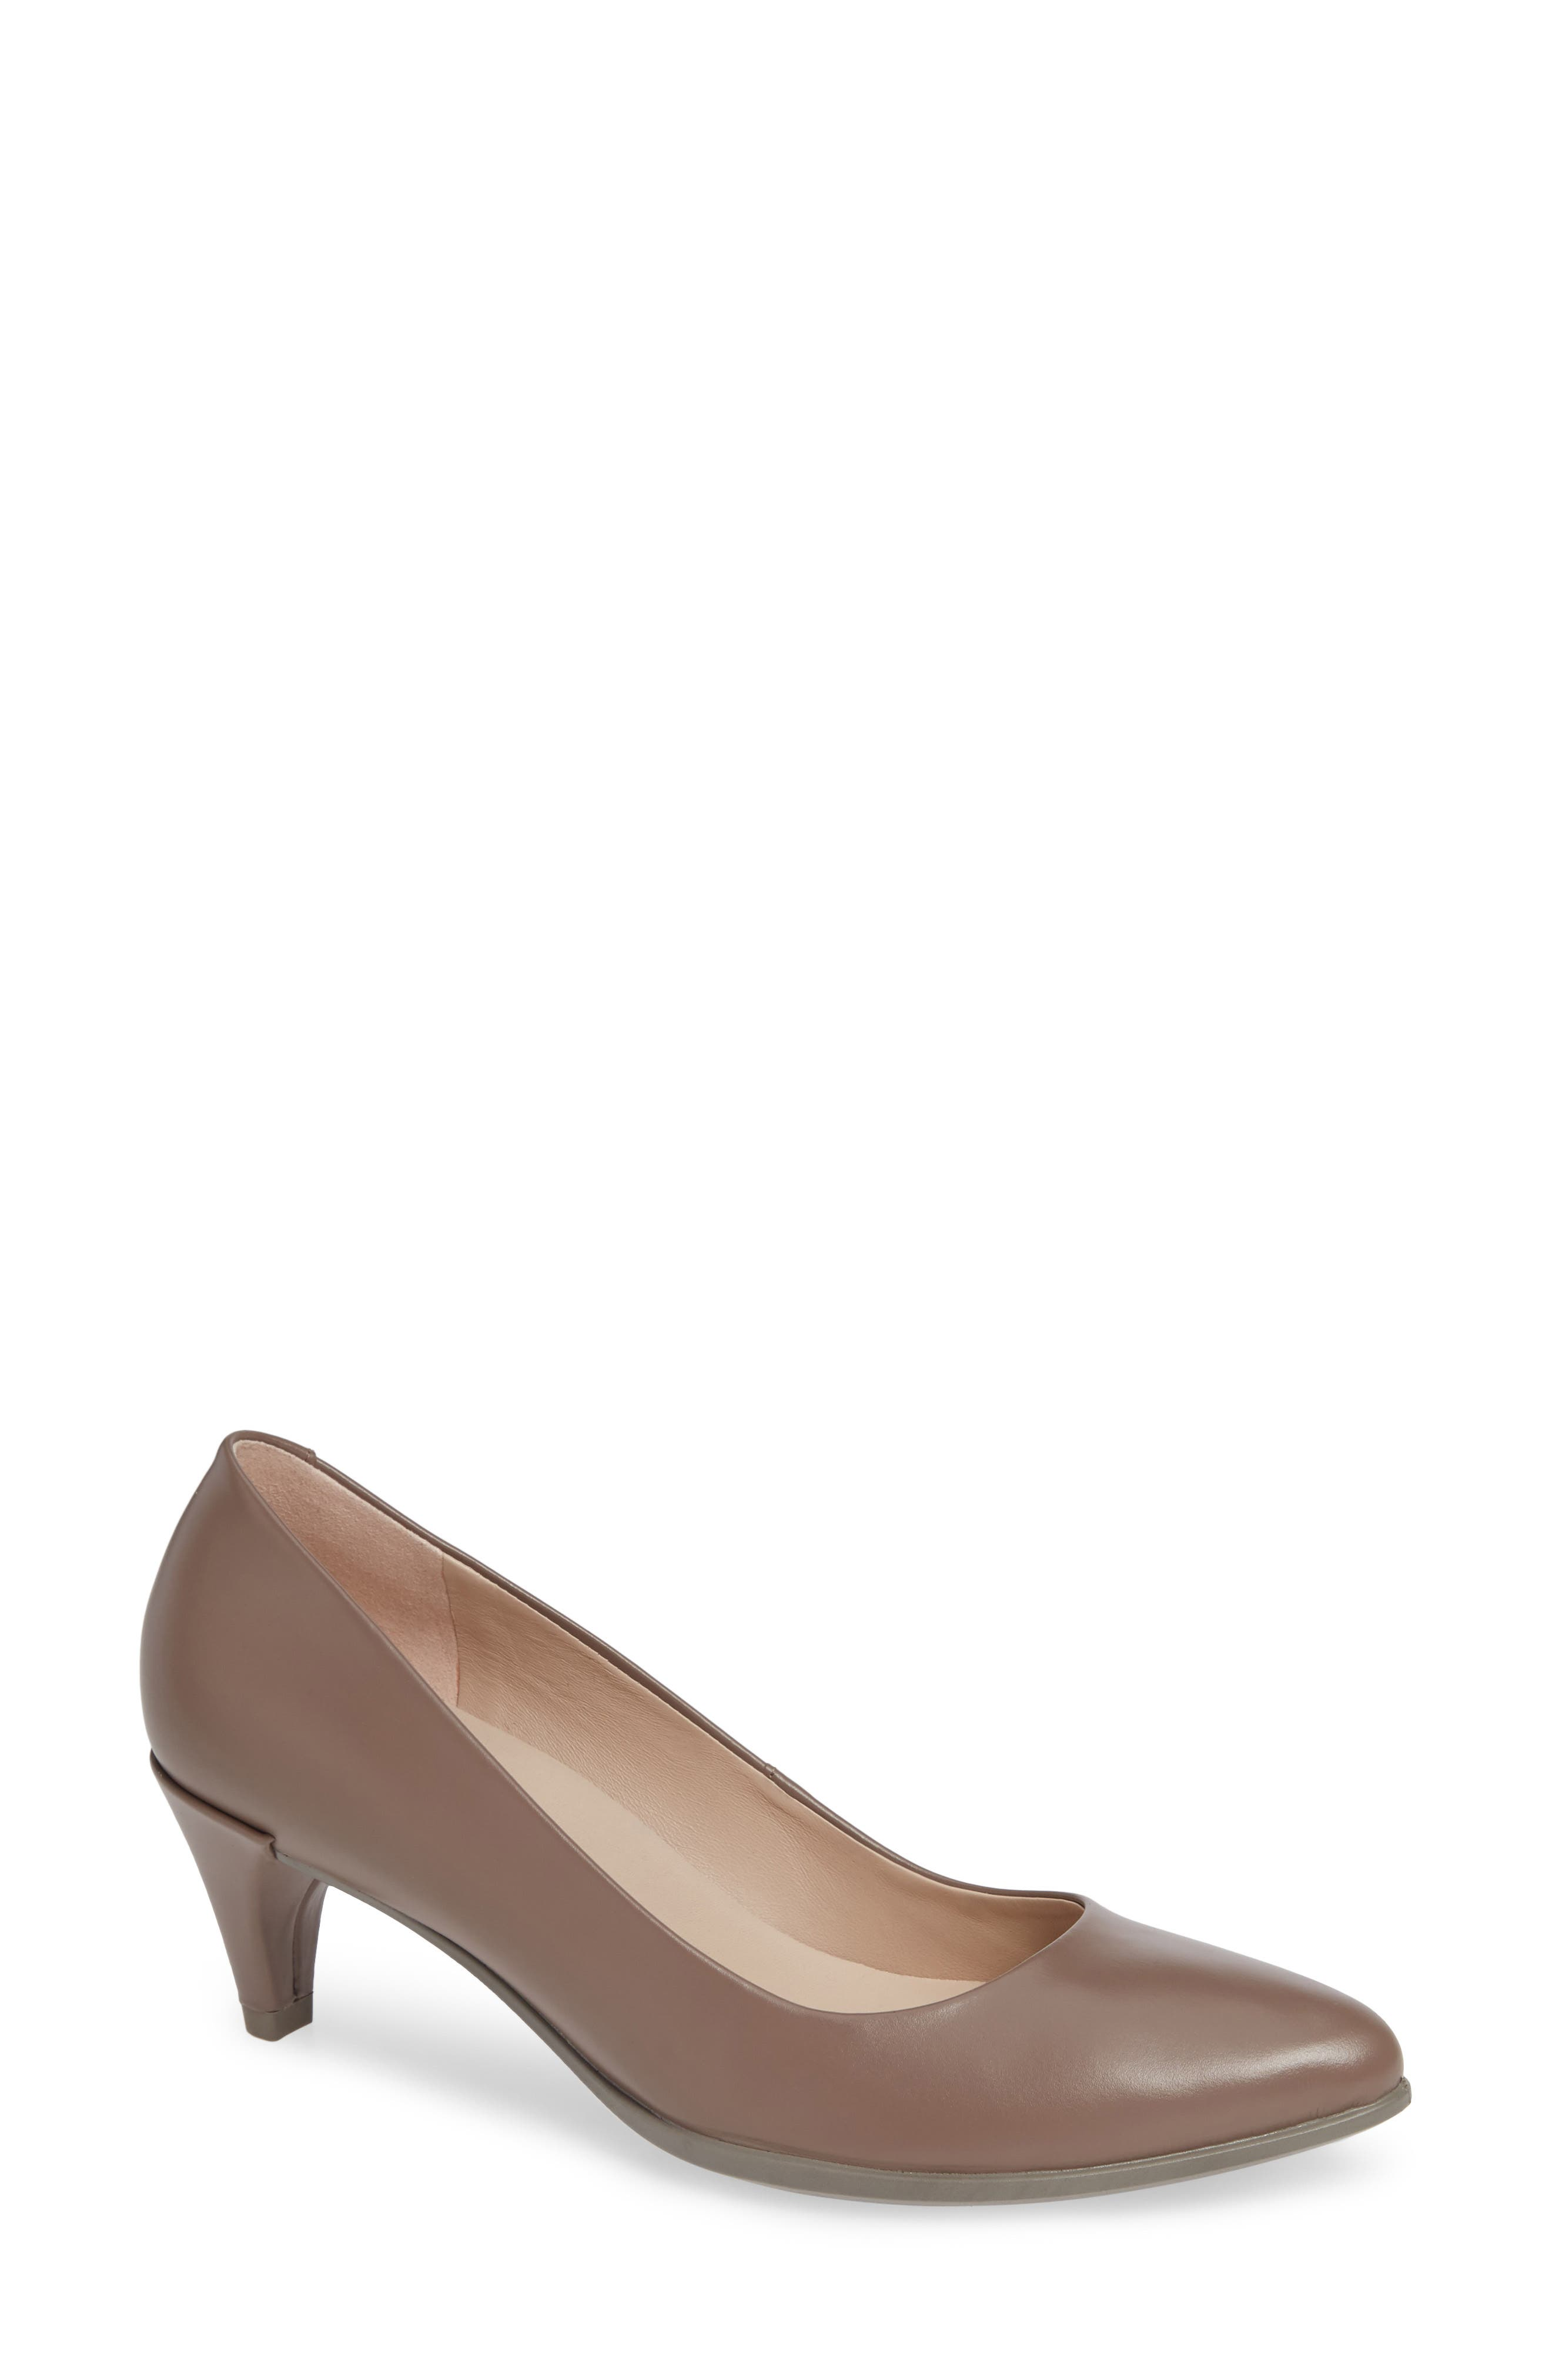 Shape 45 Pump,                             Main thumbnail 1, color,                             DEEP TAUPE LEATHER